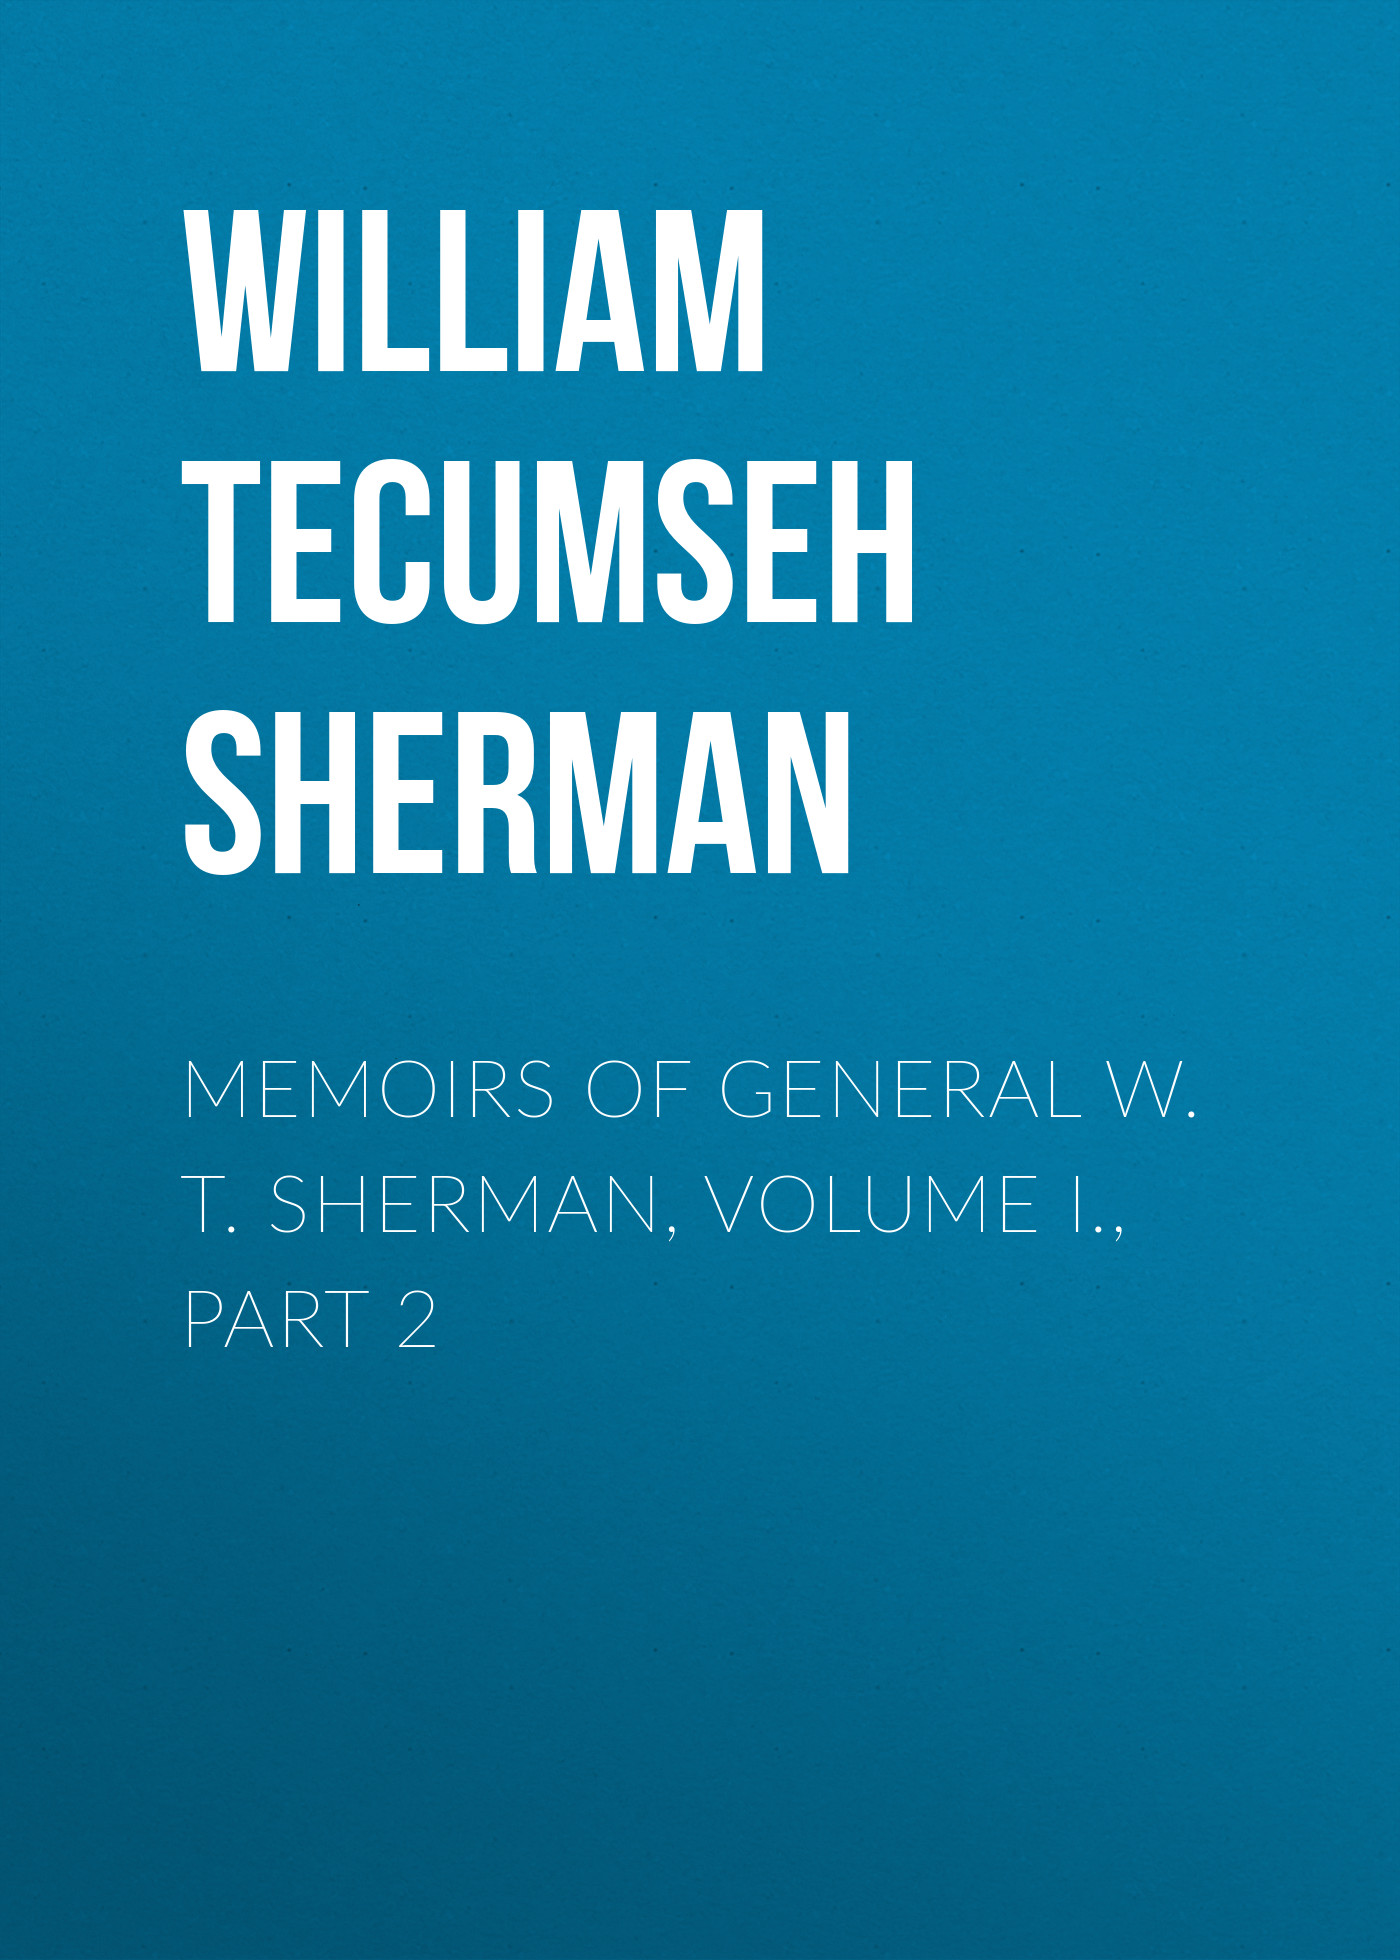 William Tecumseh Sherman Memoirs of General W. T. Sherman, Volume I., Part 2